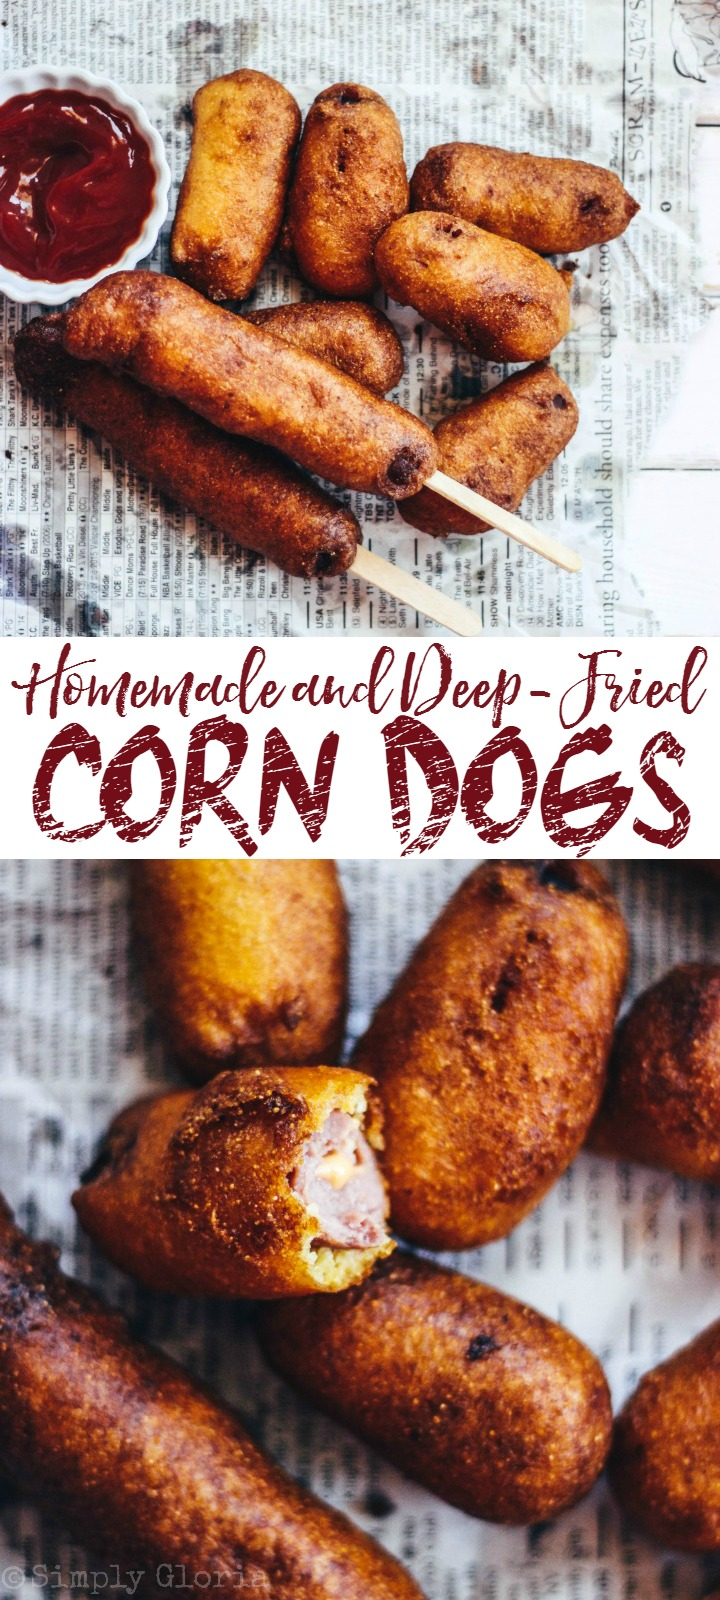 Homemade Corn Dogs drenched in a decadent buttermilk batter and deep-fried!